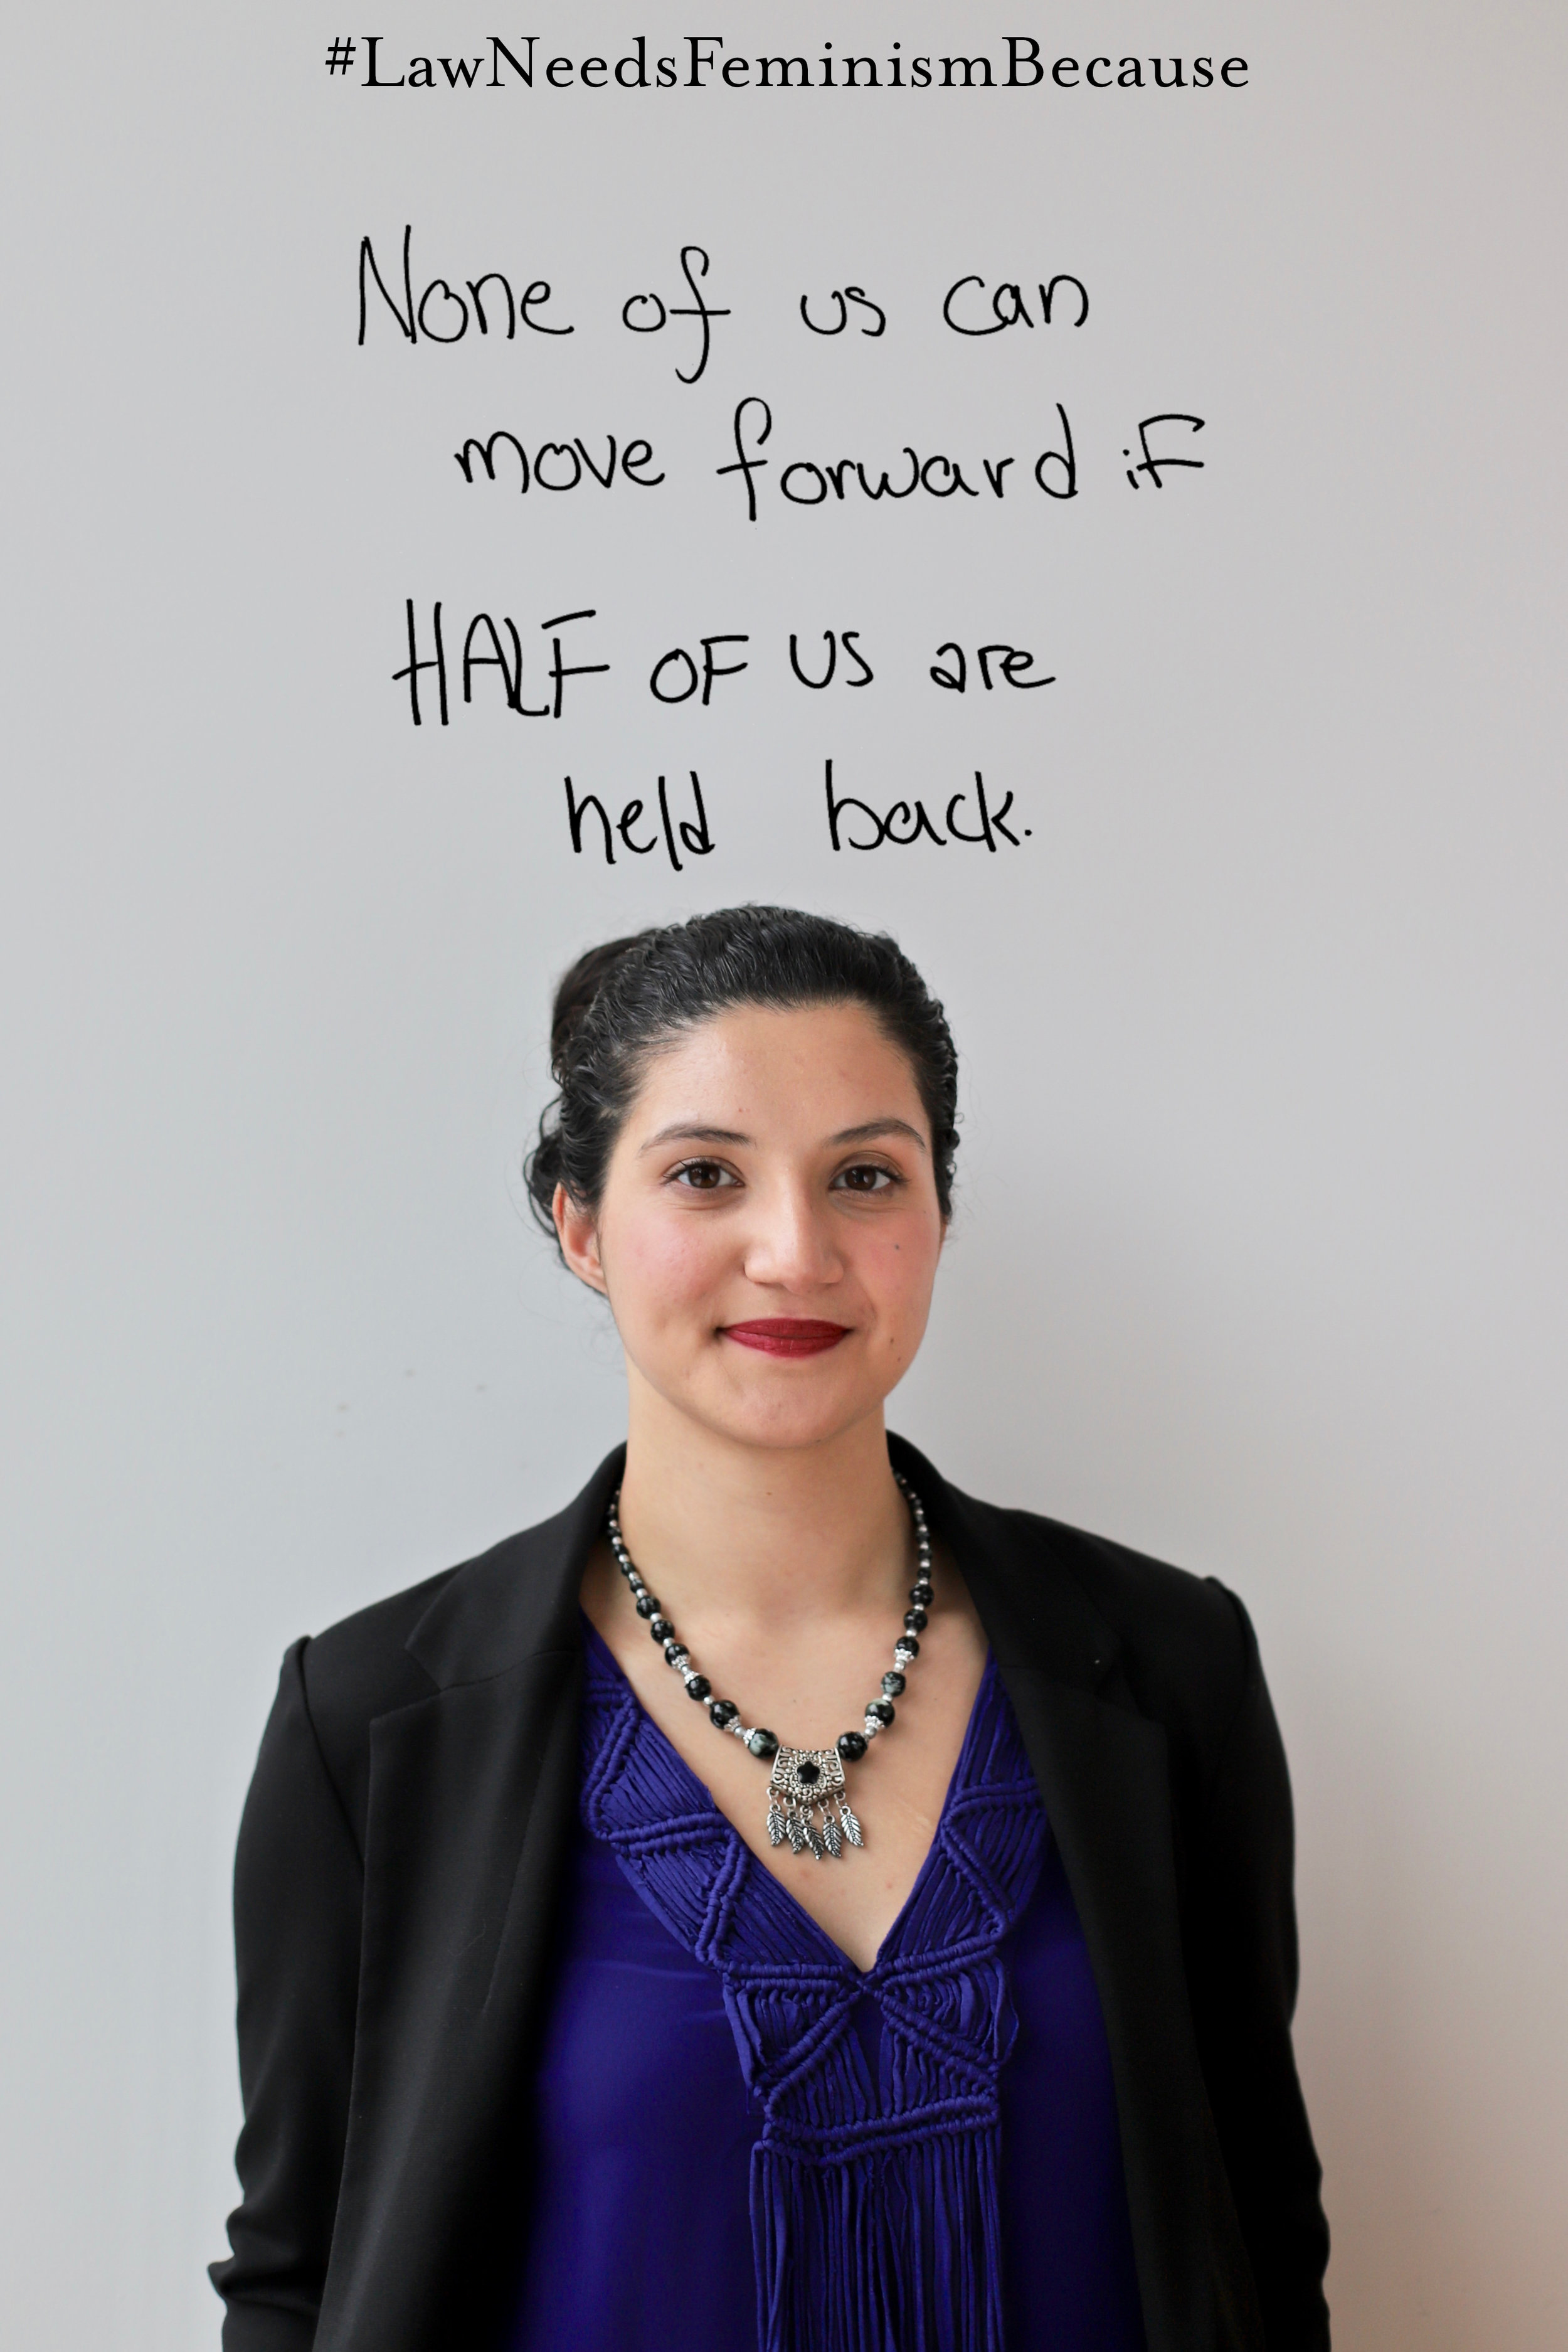 #LawNeedsFeminismBecause none of us can move forward if HALF of us are held back